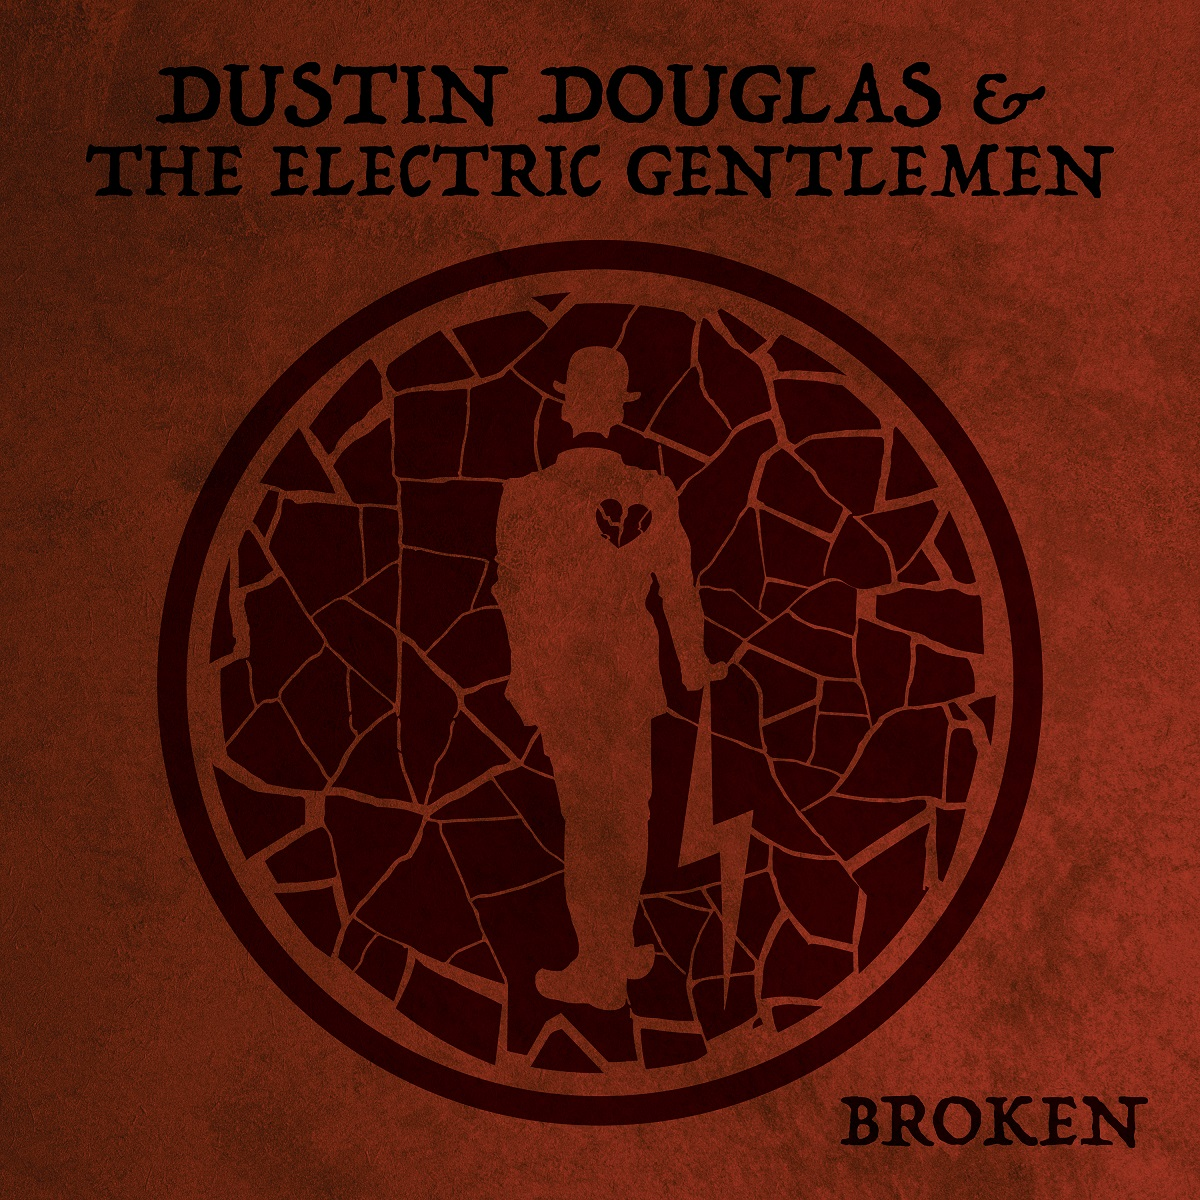 Dustin Douglas & The electric Gentlemen | New Single And Video 'Broken' Out Now